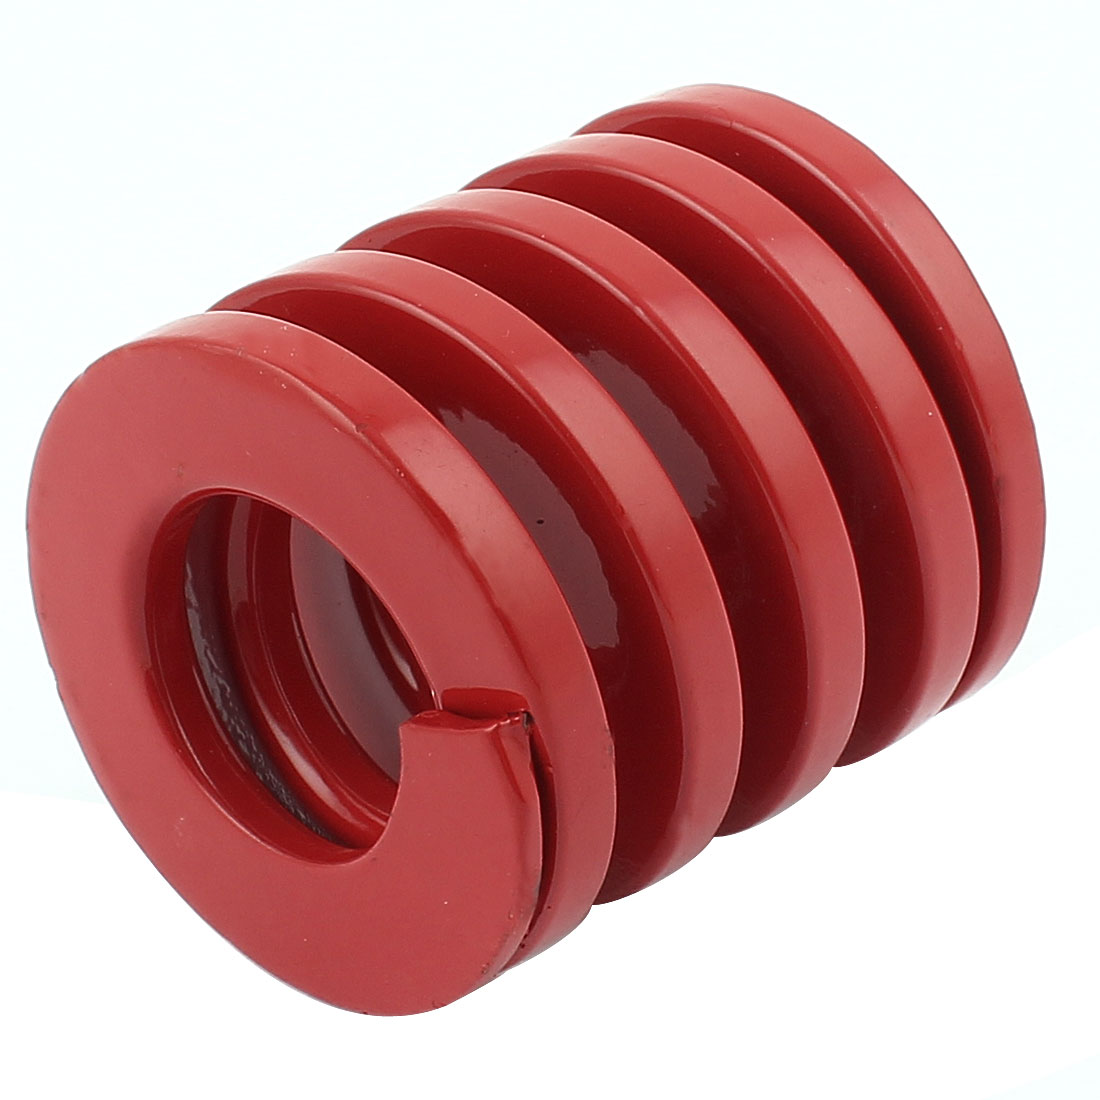 Alloy Steel Red Medium Load Press Flat Coil Compression Die Spring 50mm x 25mm x 50mm